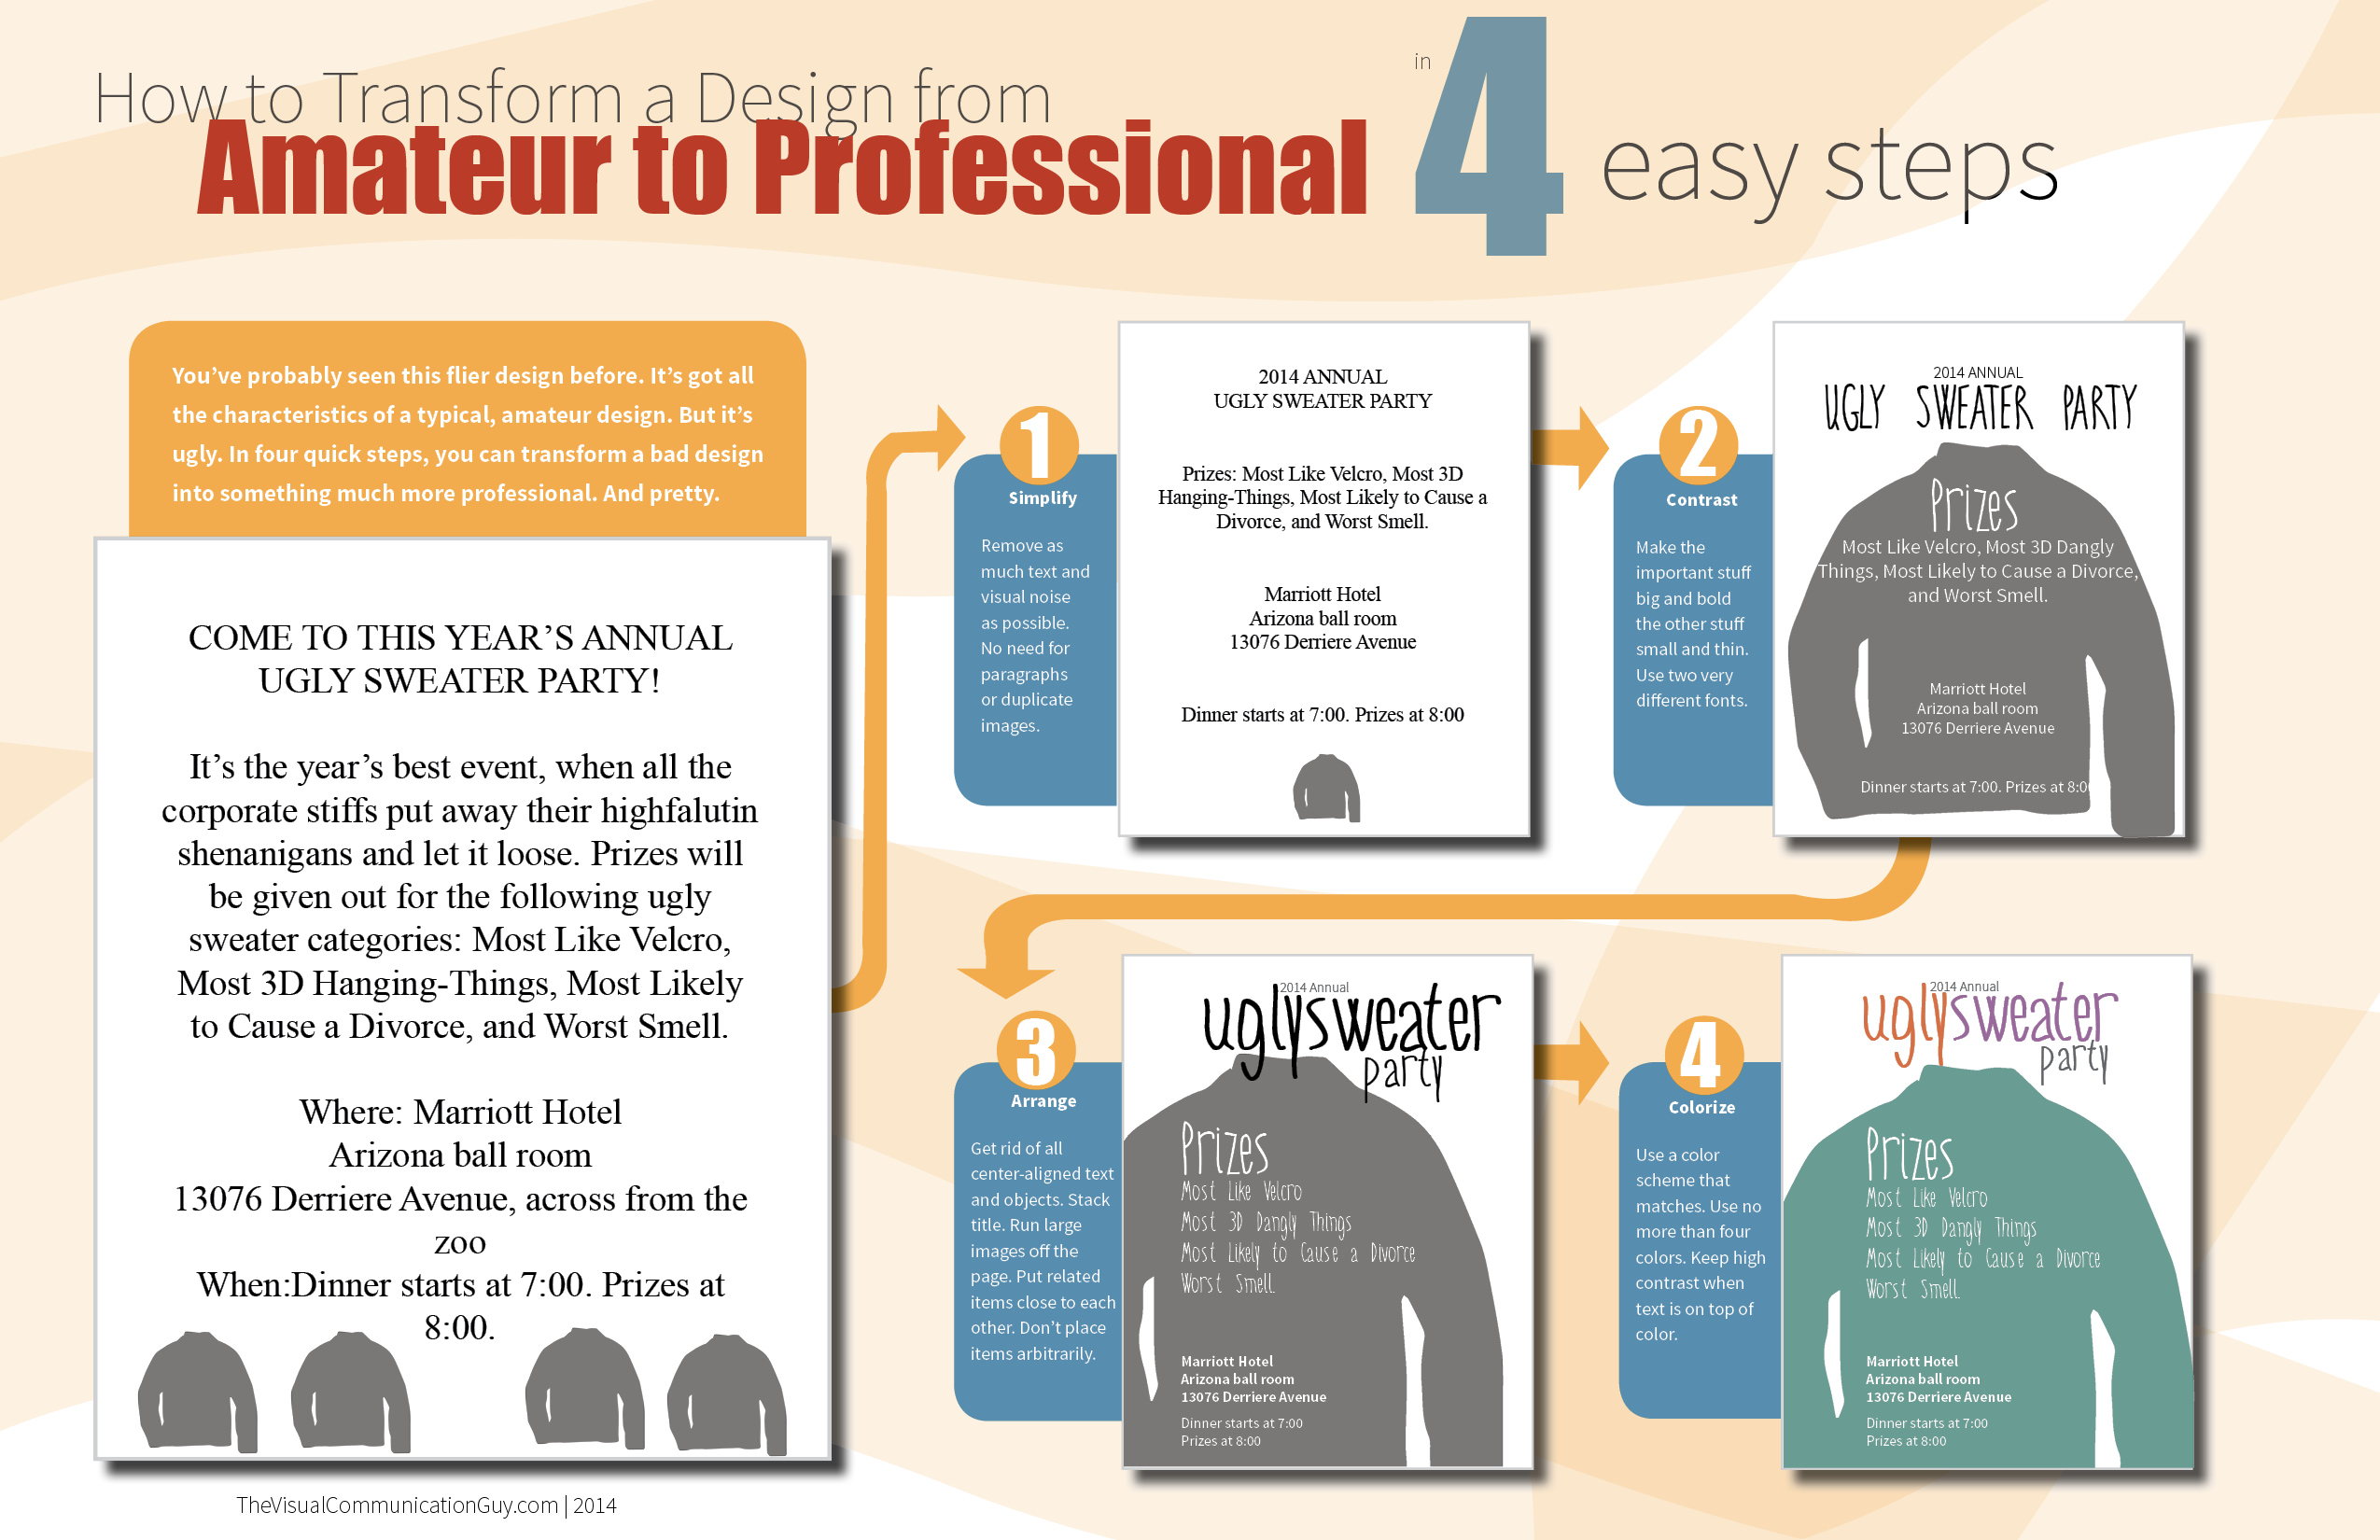 How to transform a design from amateur to professional in four easy steps